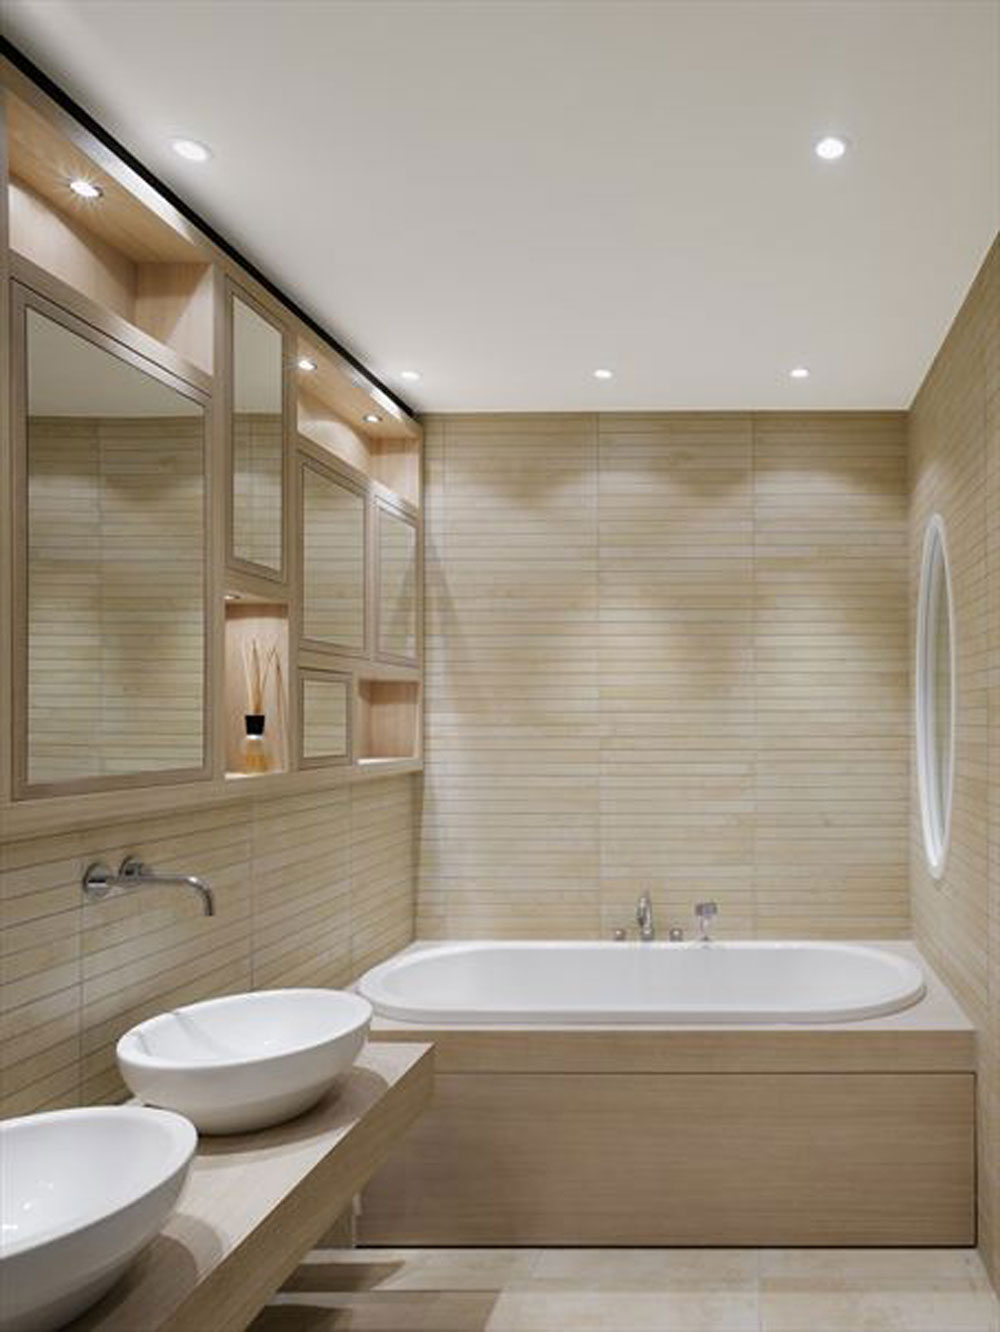 How To Decorate A Small Bathroom And Still Save Space 4 How To Decorate A Small Bathroom And Still Save Space